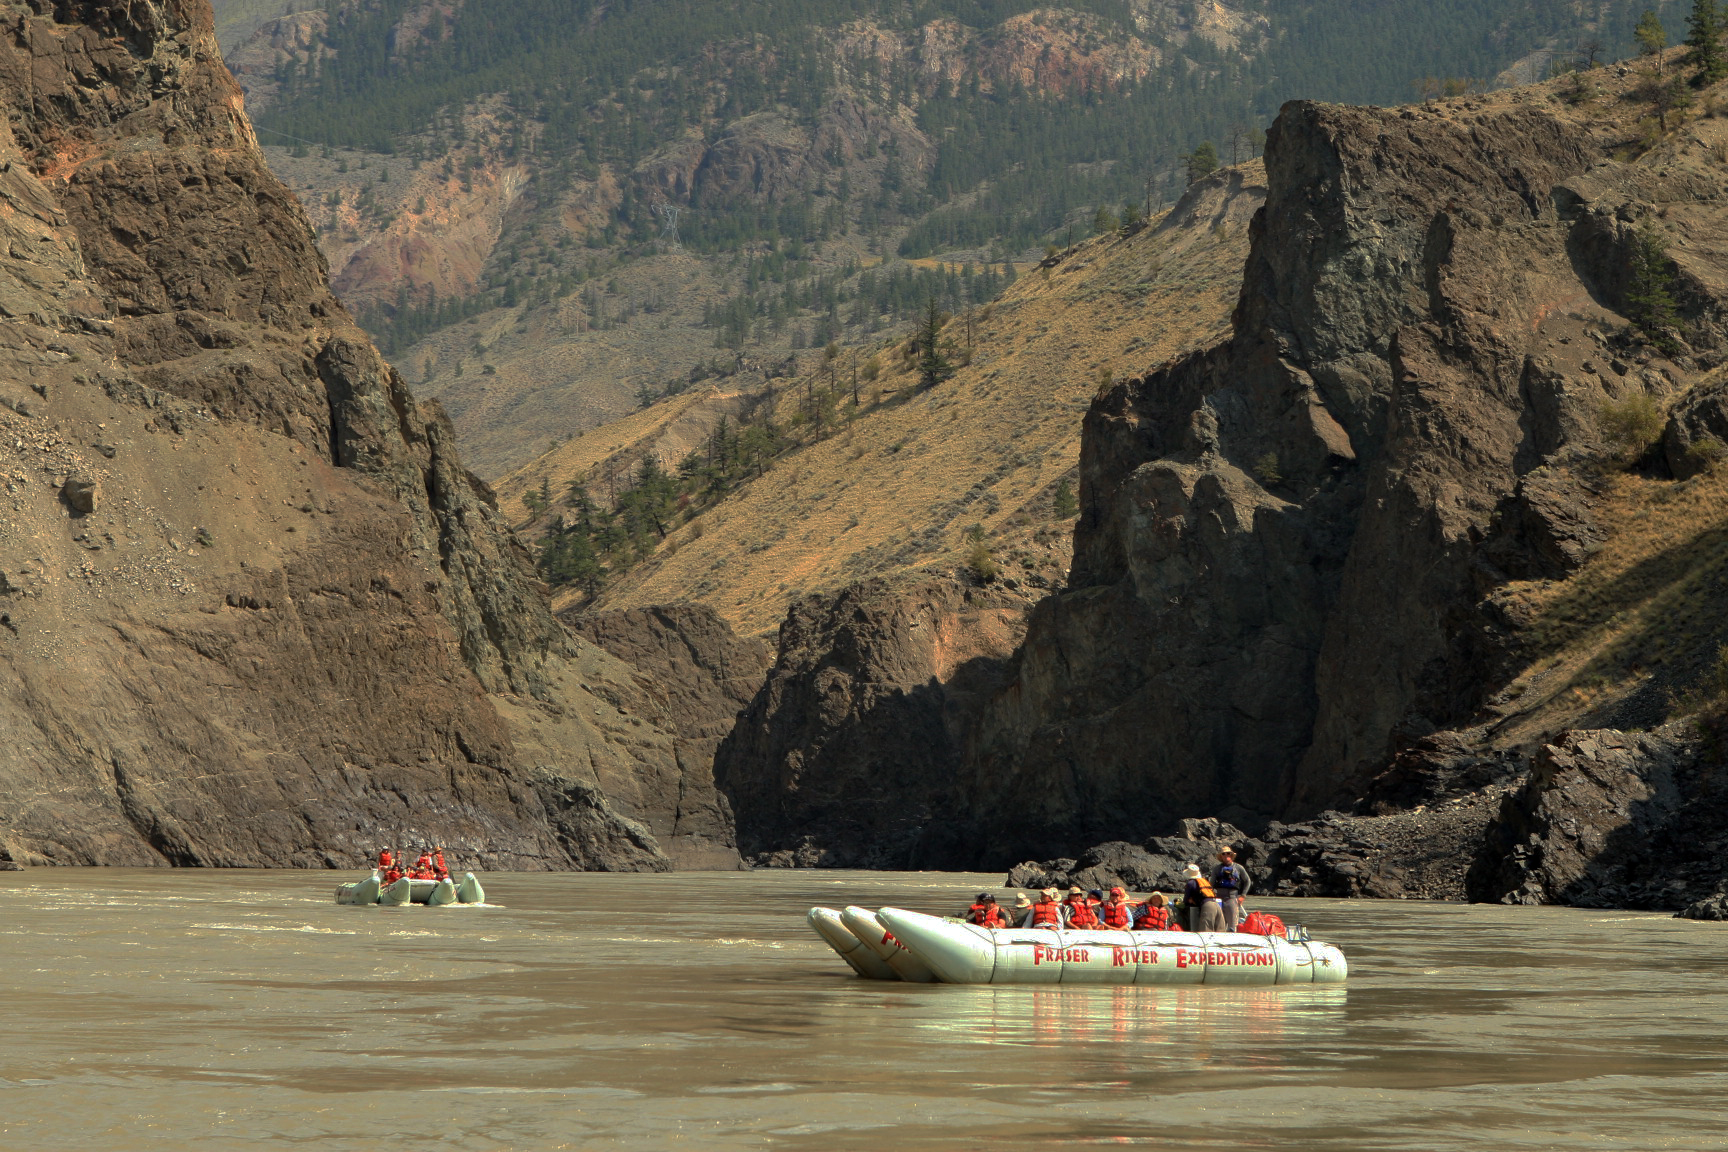 Fraser River Raft Expeditions base